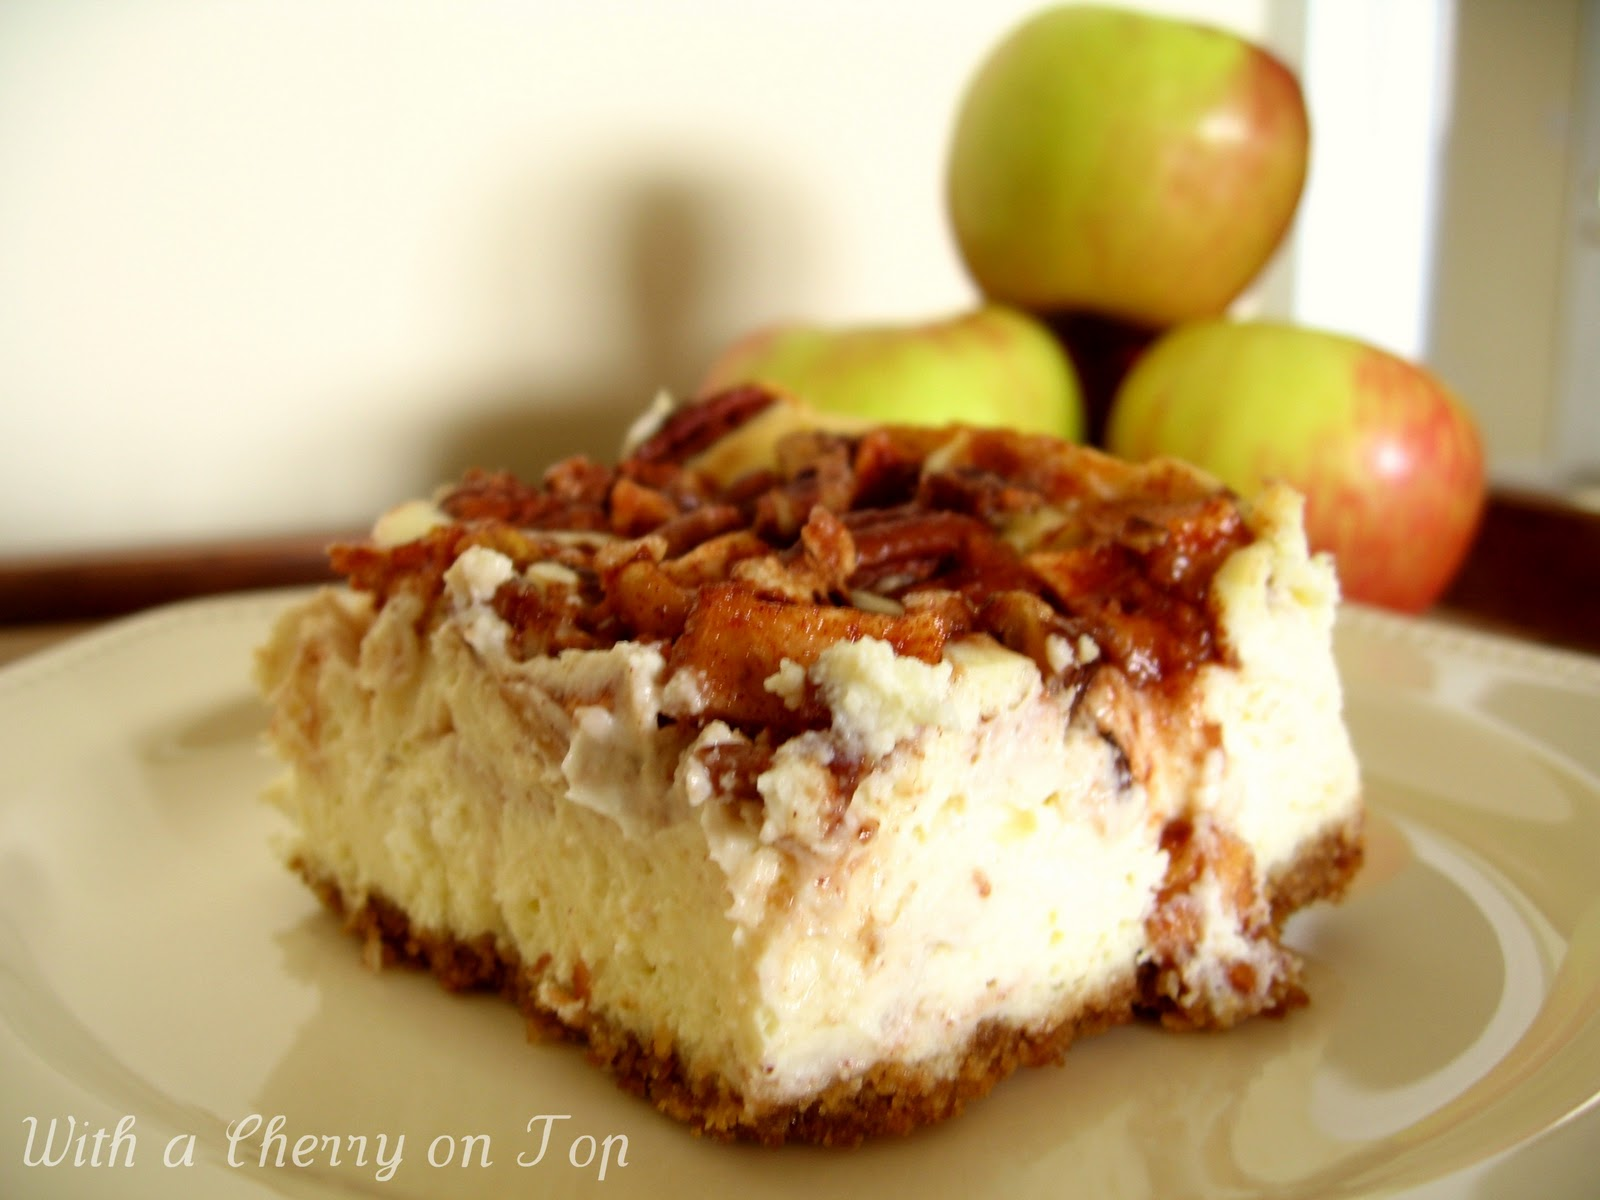 With a Cherry on Top: Apple Pecan Cheesecake - What's Baking Challenge